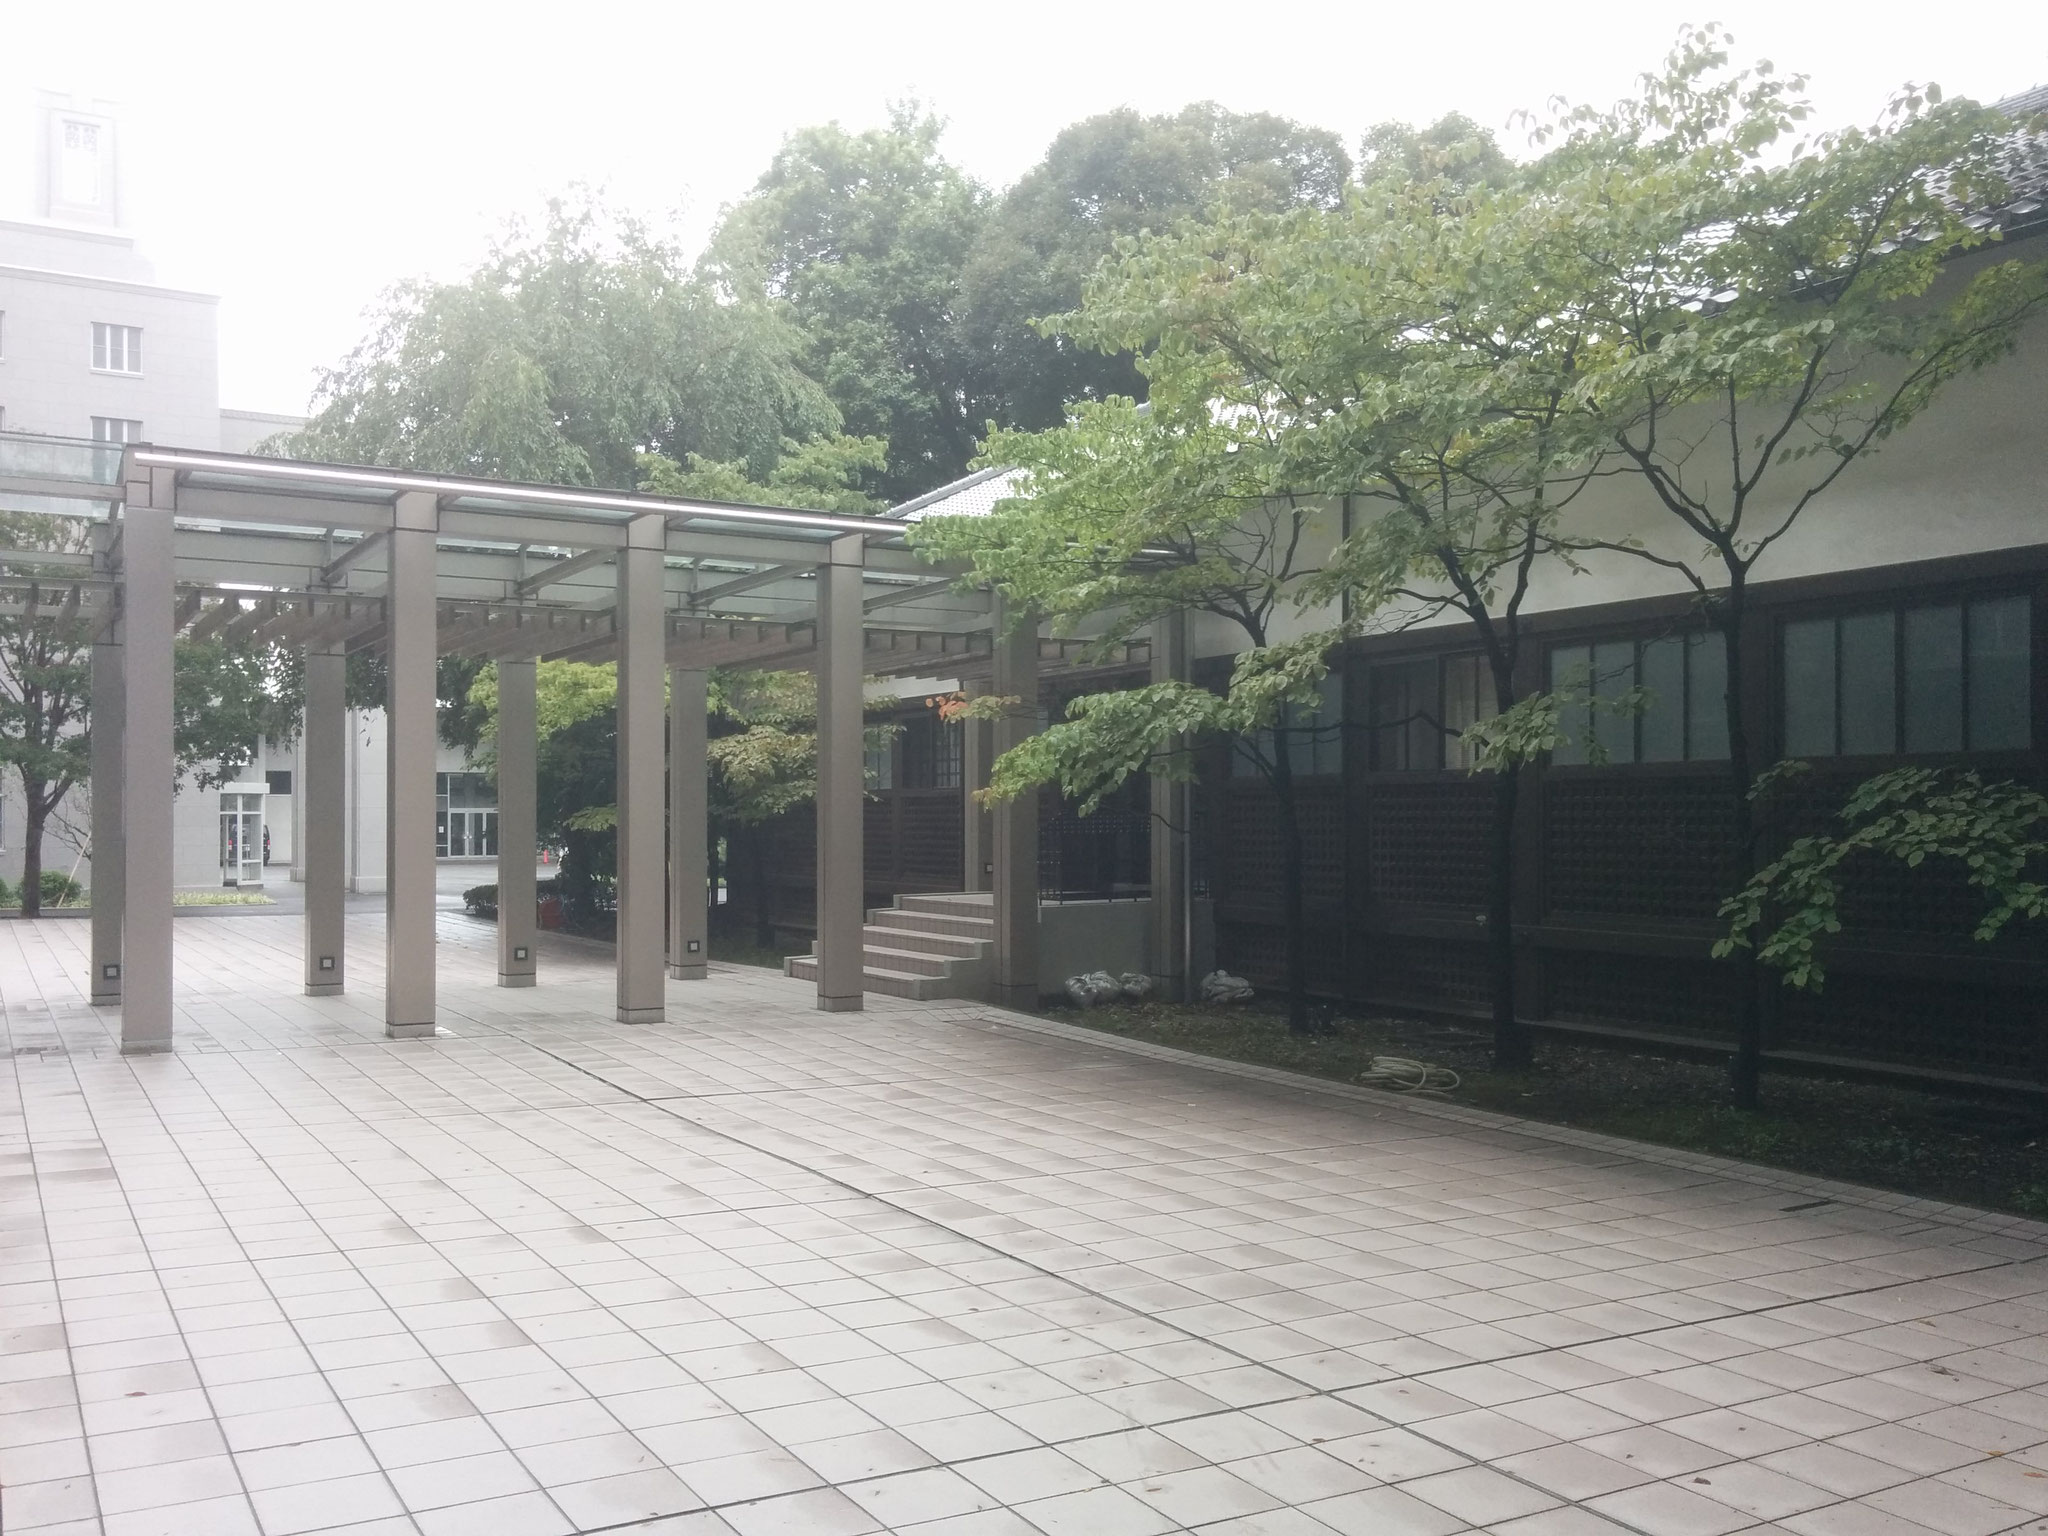 12 Hiroo - old buildings outside of the university building